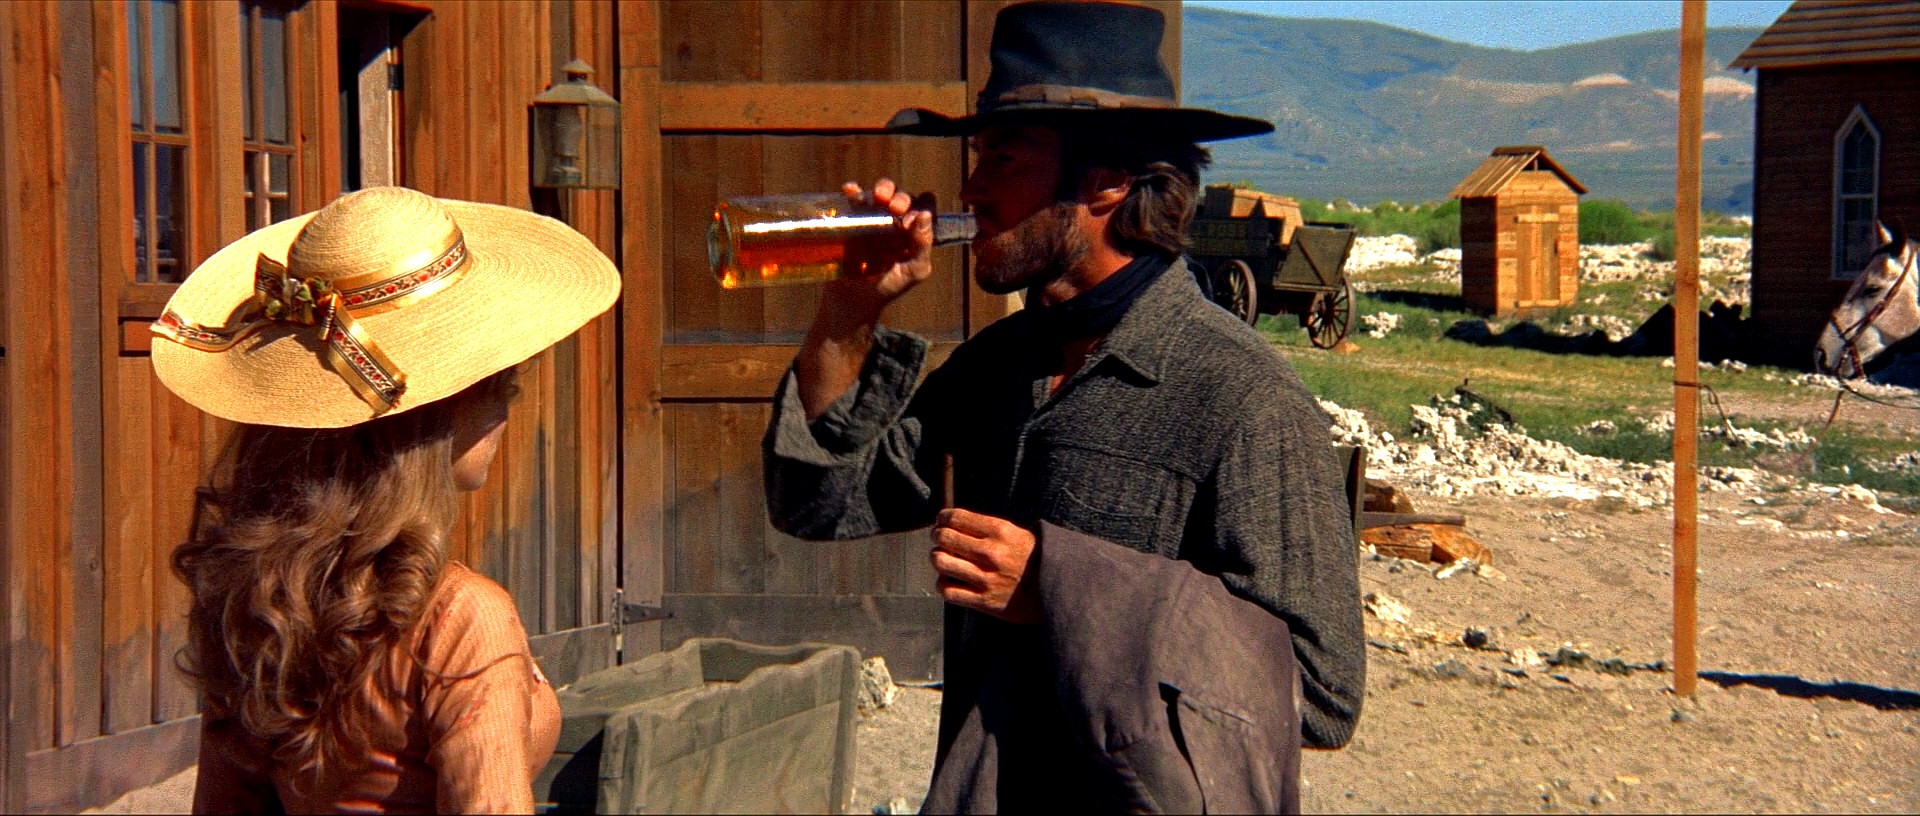 high plains drifter Wallpaper and Background Image ...